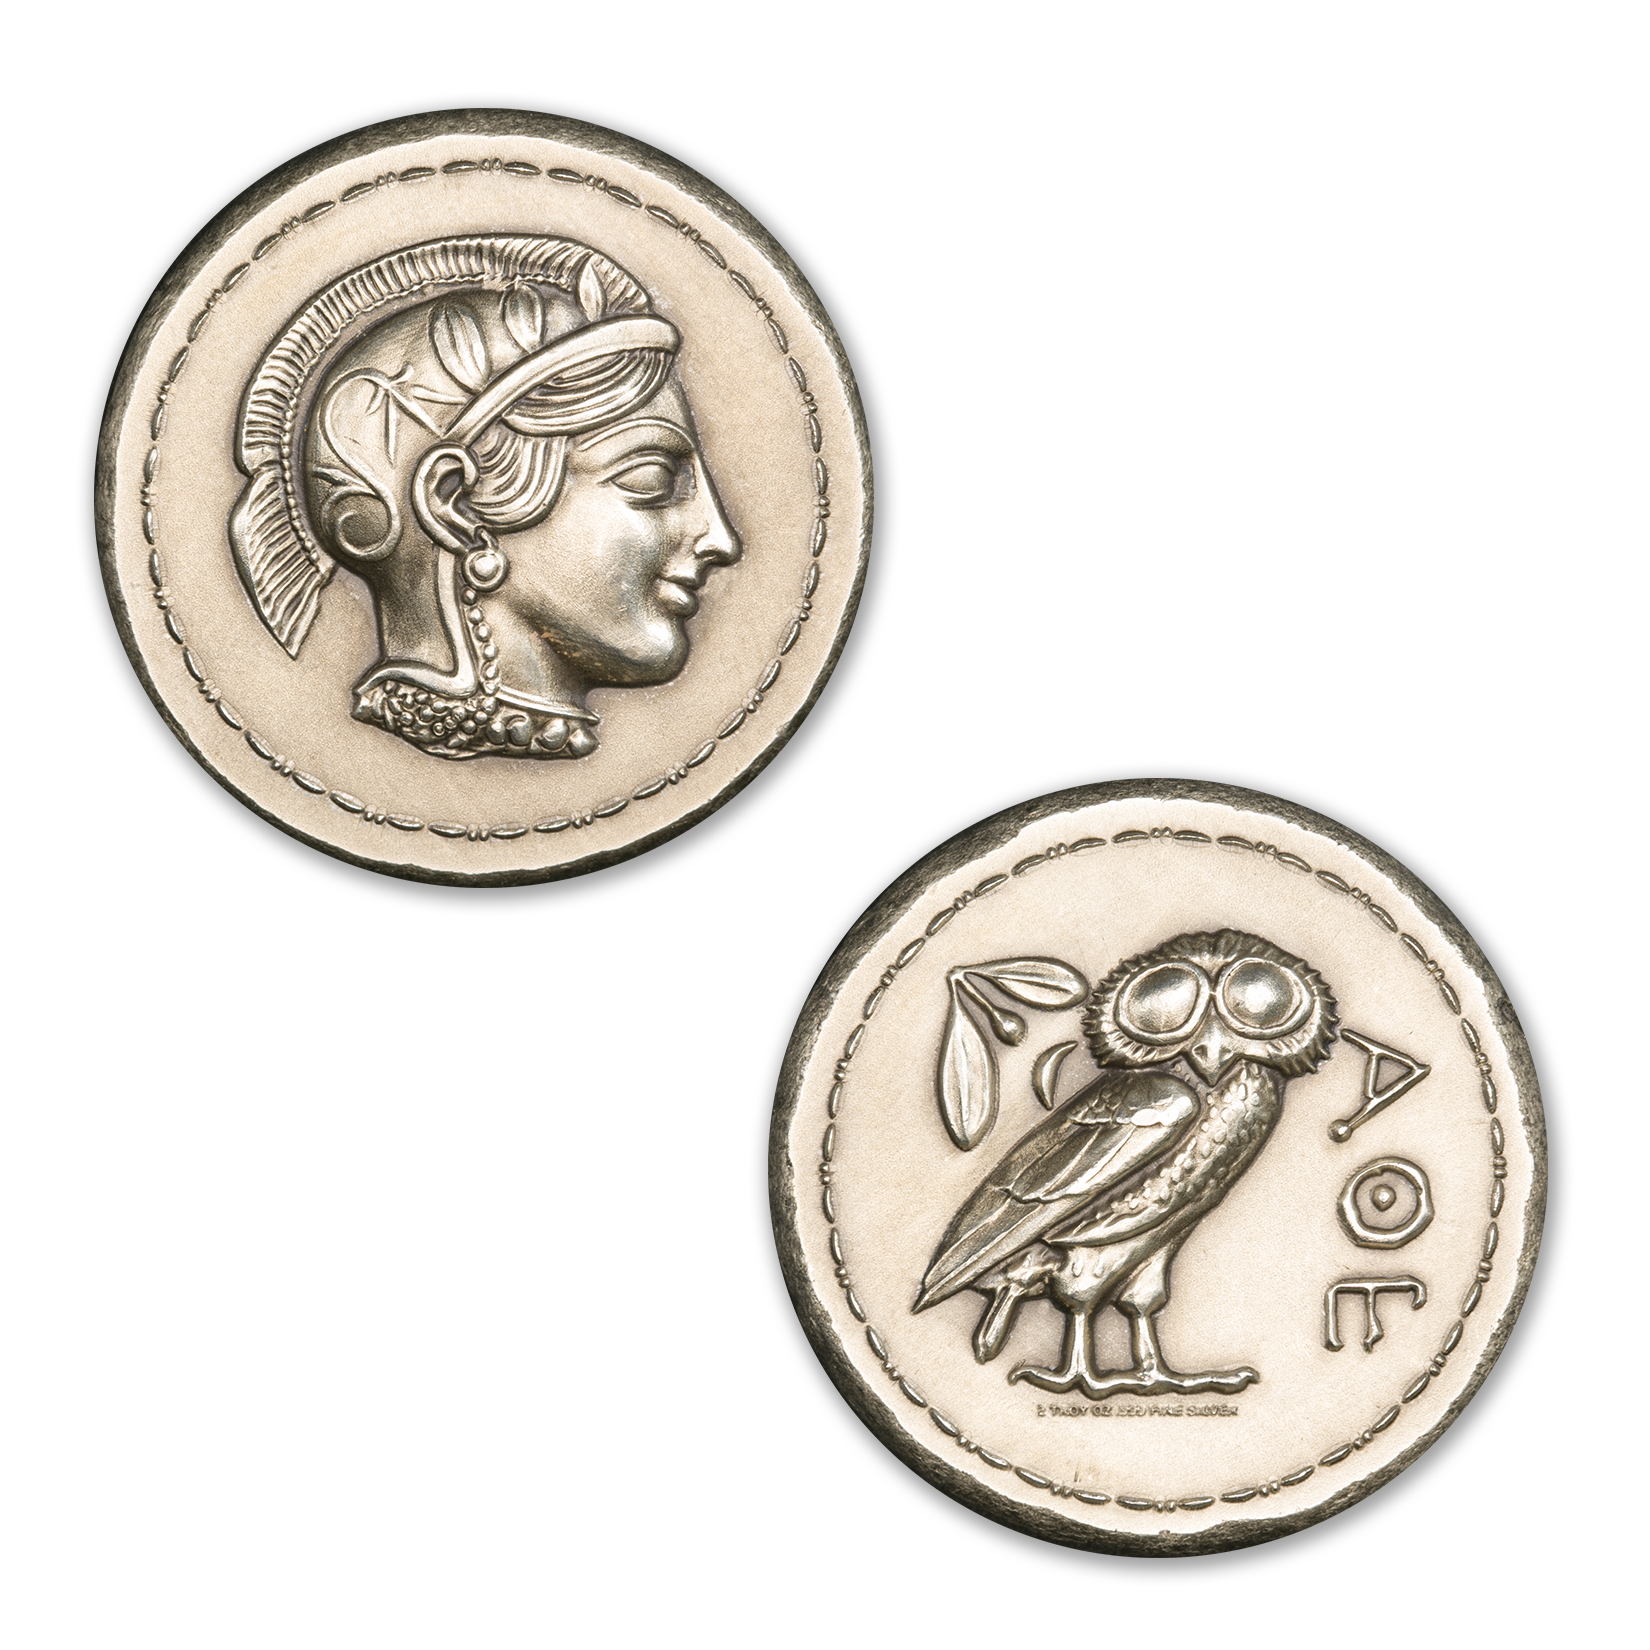 ATHENA AND OWL TETRADRACHM – UHR – 2 TROY OUNCE – 36MM – PATINA FINISH –  (LIMITED MINTAGE: 1,000)